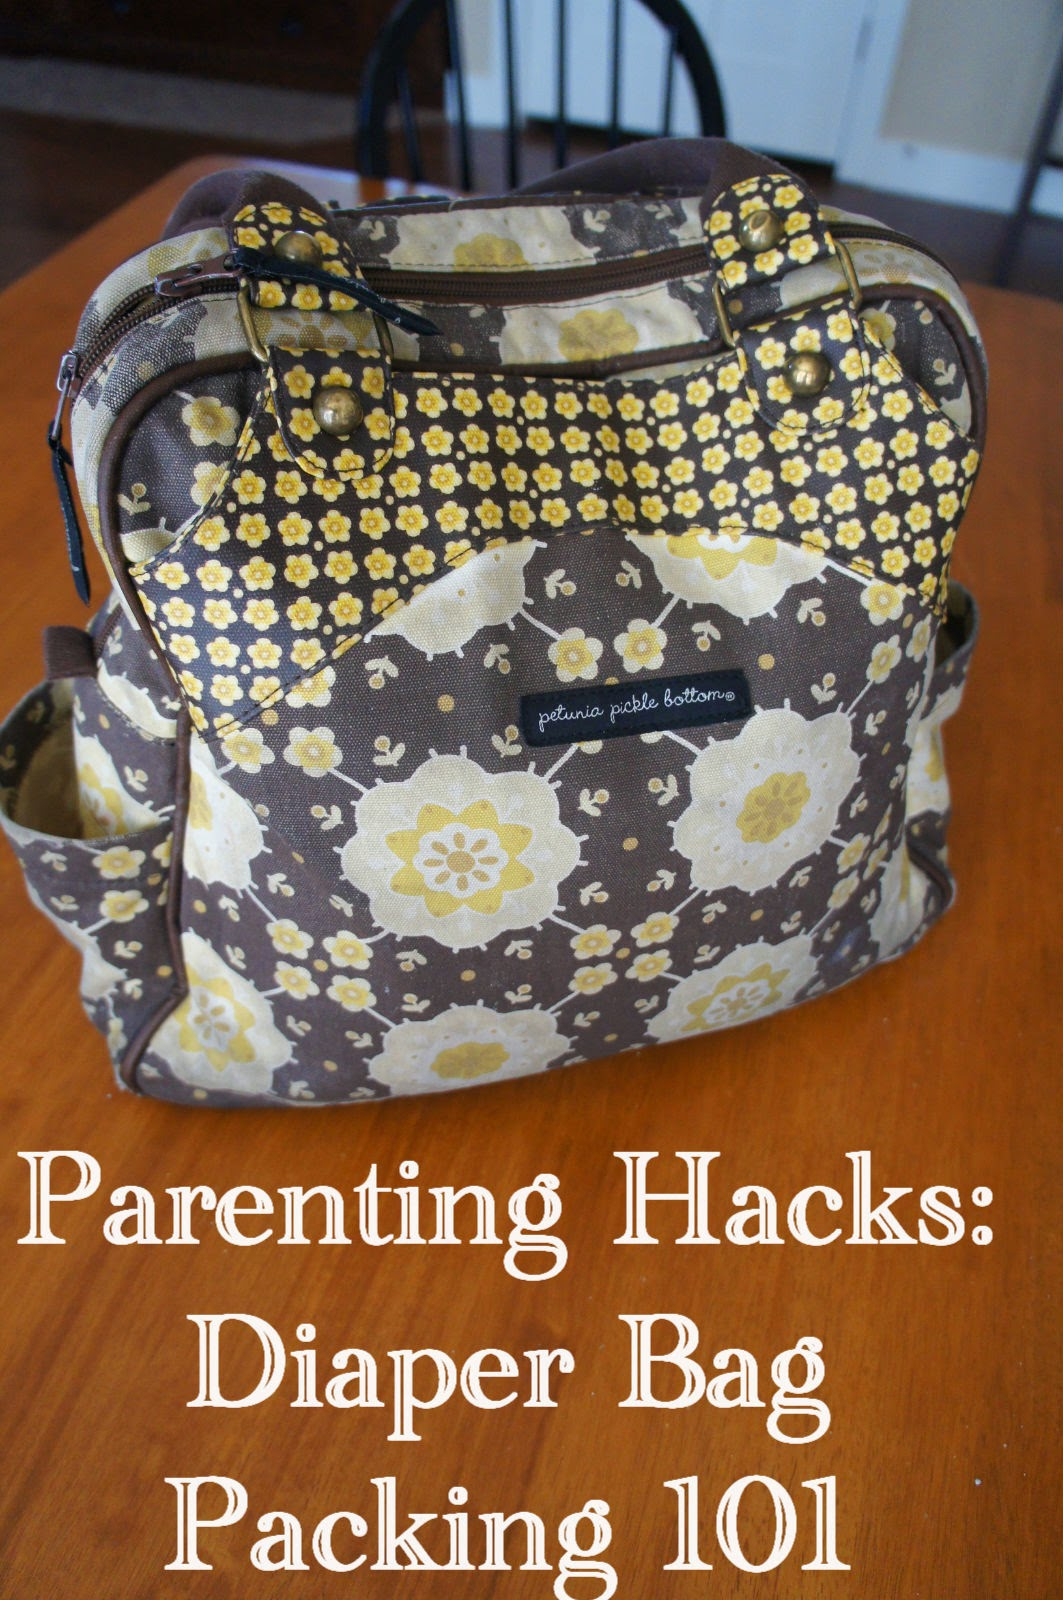 c g mr b family friends fun parenting hacks diaper bag packing 101. Black Bedroom Furniture Sets. Home Design Ideas